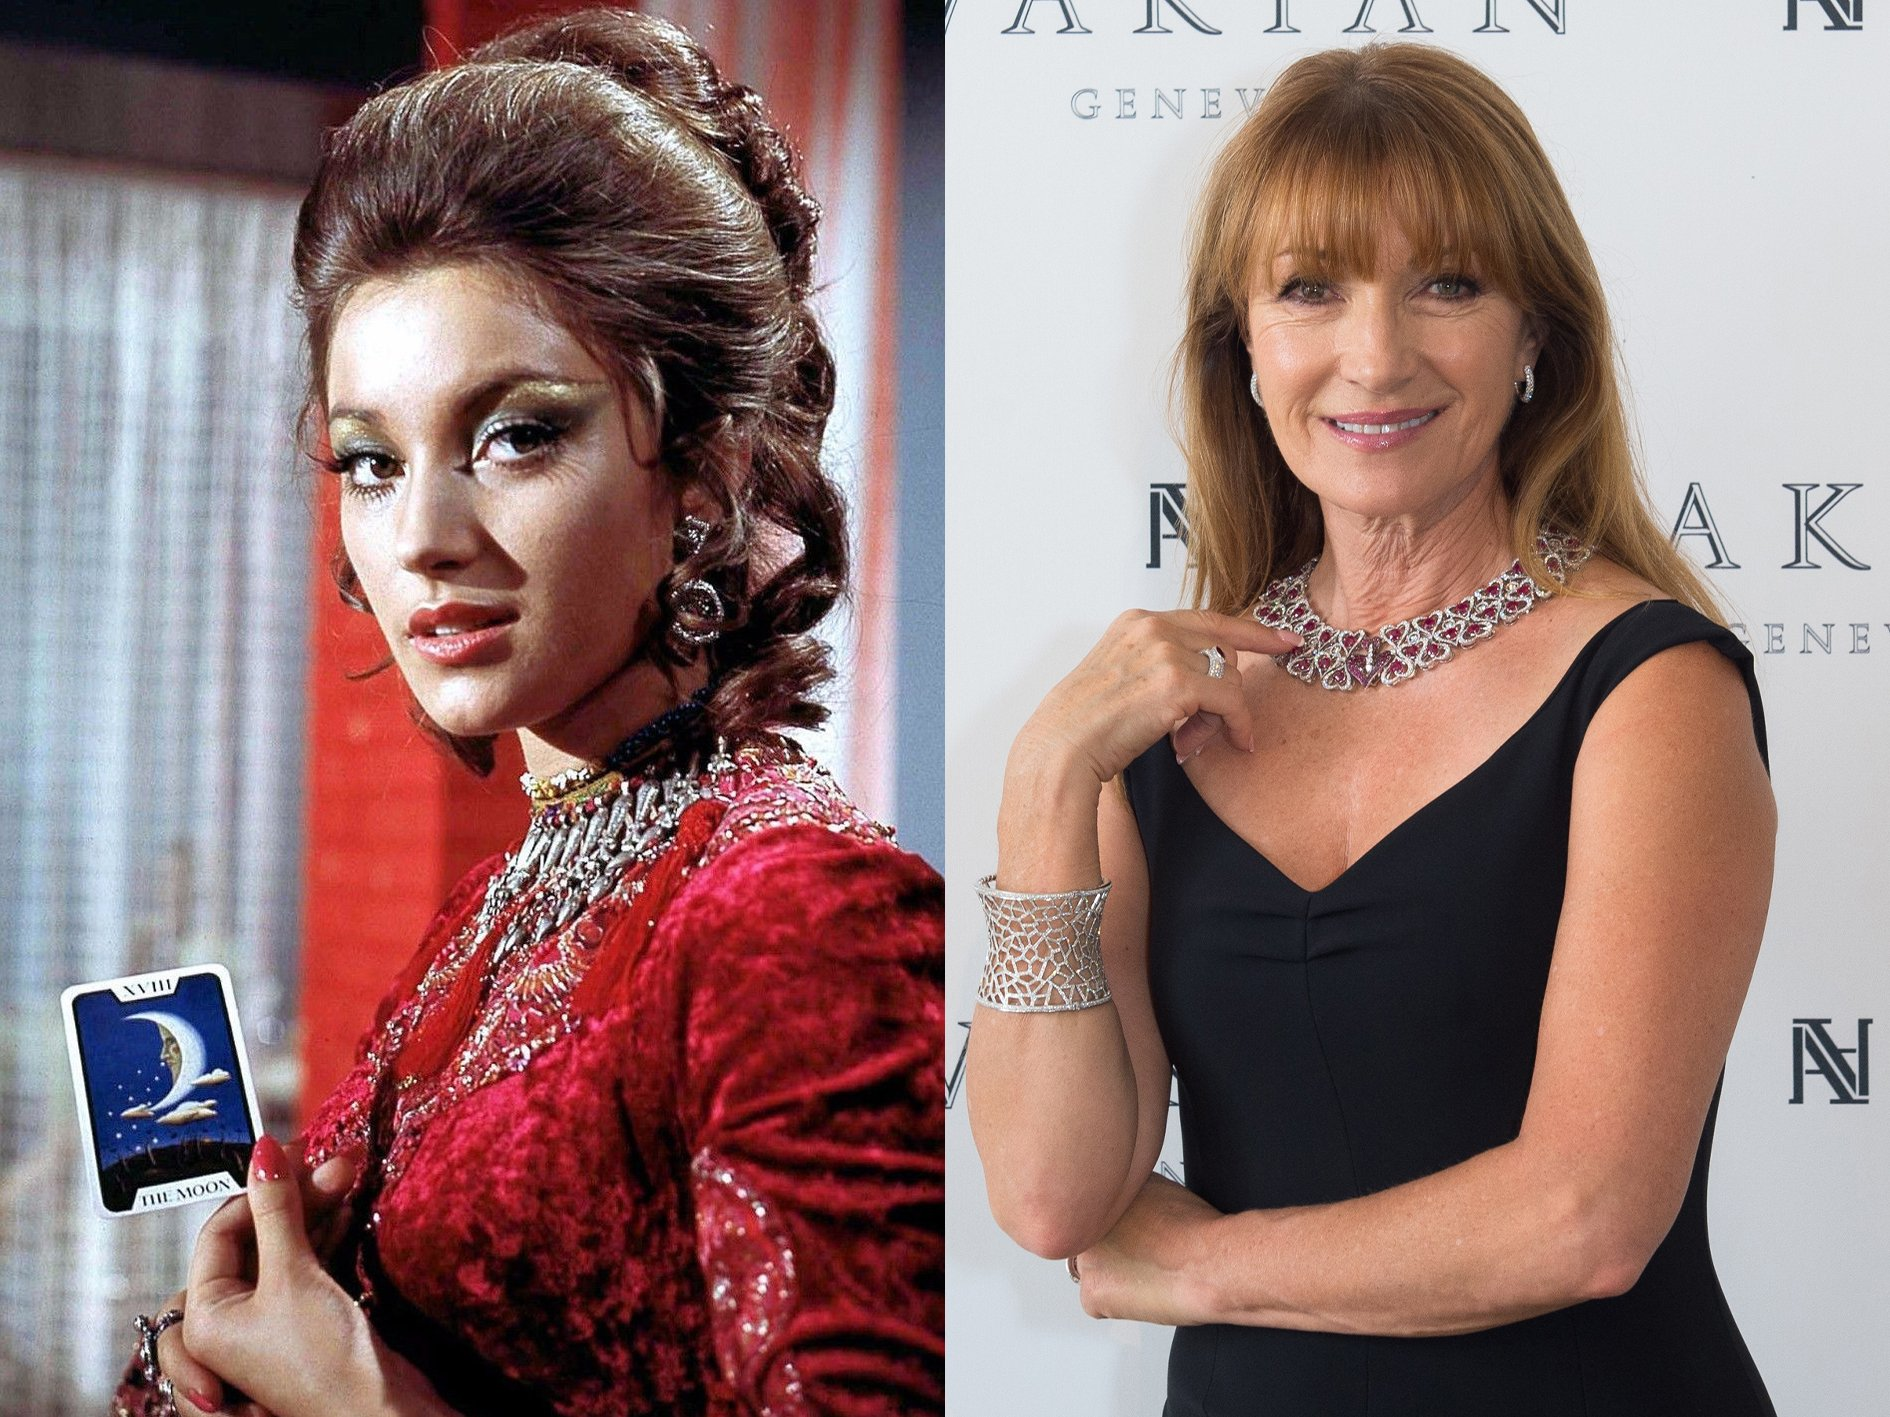 Jane Seymour Live and Let Die What Your Favourite Bond Girls Look Like Now